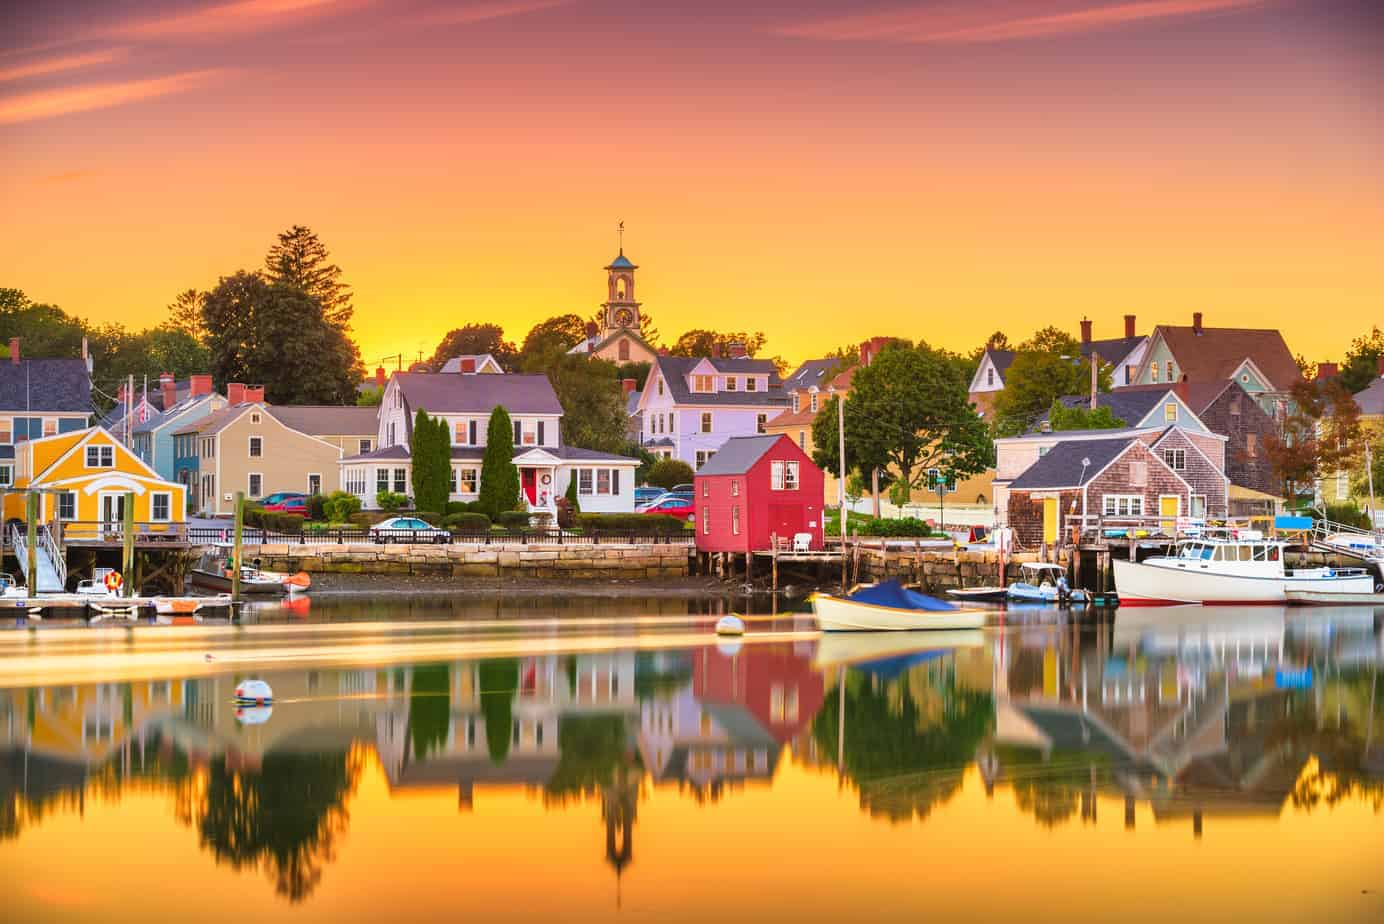 things to do in portsmouth NH header - photo of portsmouth town from the water, golden sunset, boats in the foreground, classic New England coastal town